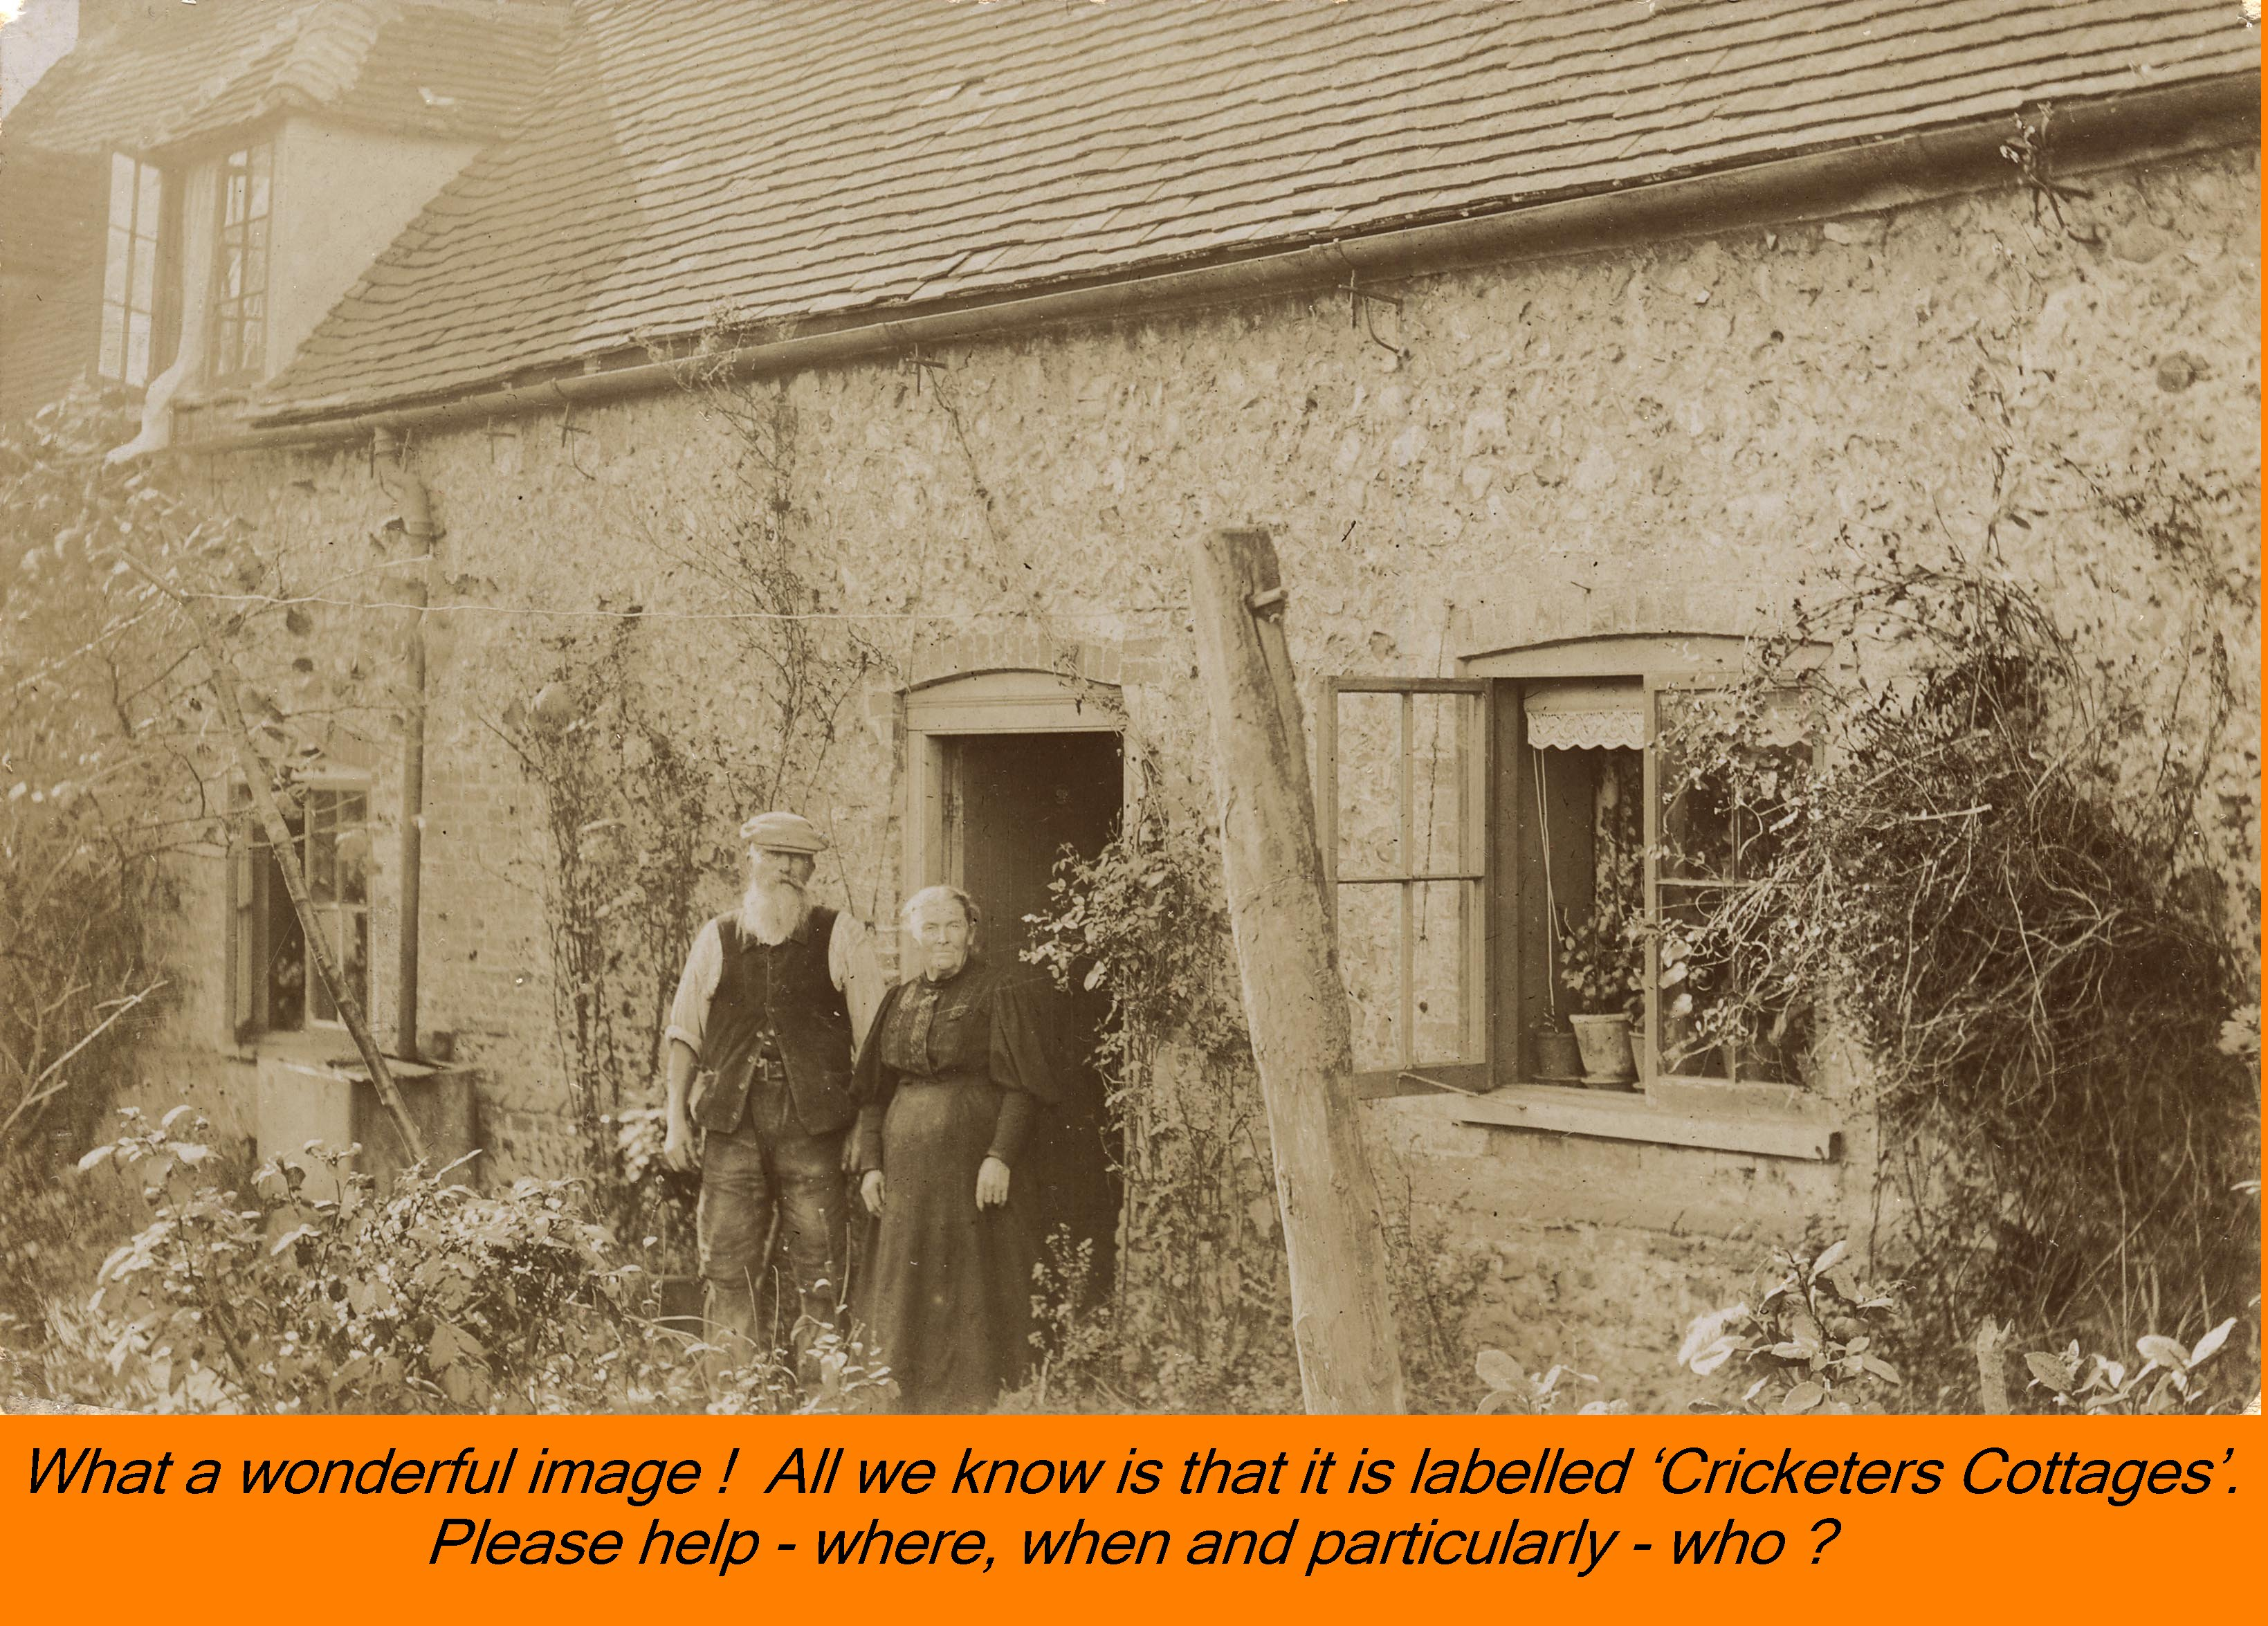 WESTBOURNE HISTORY PHOTO, CRICKETERS COTTAGES, MYSTERY